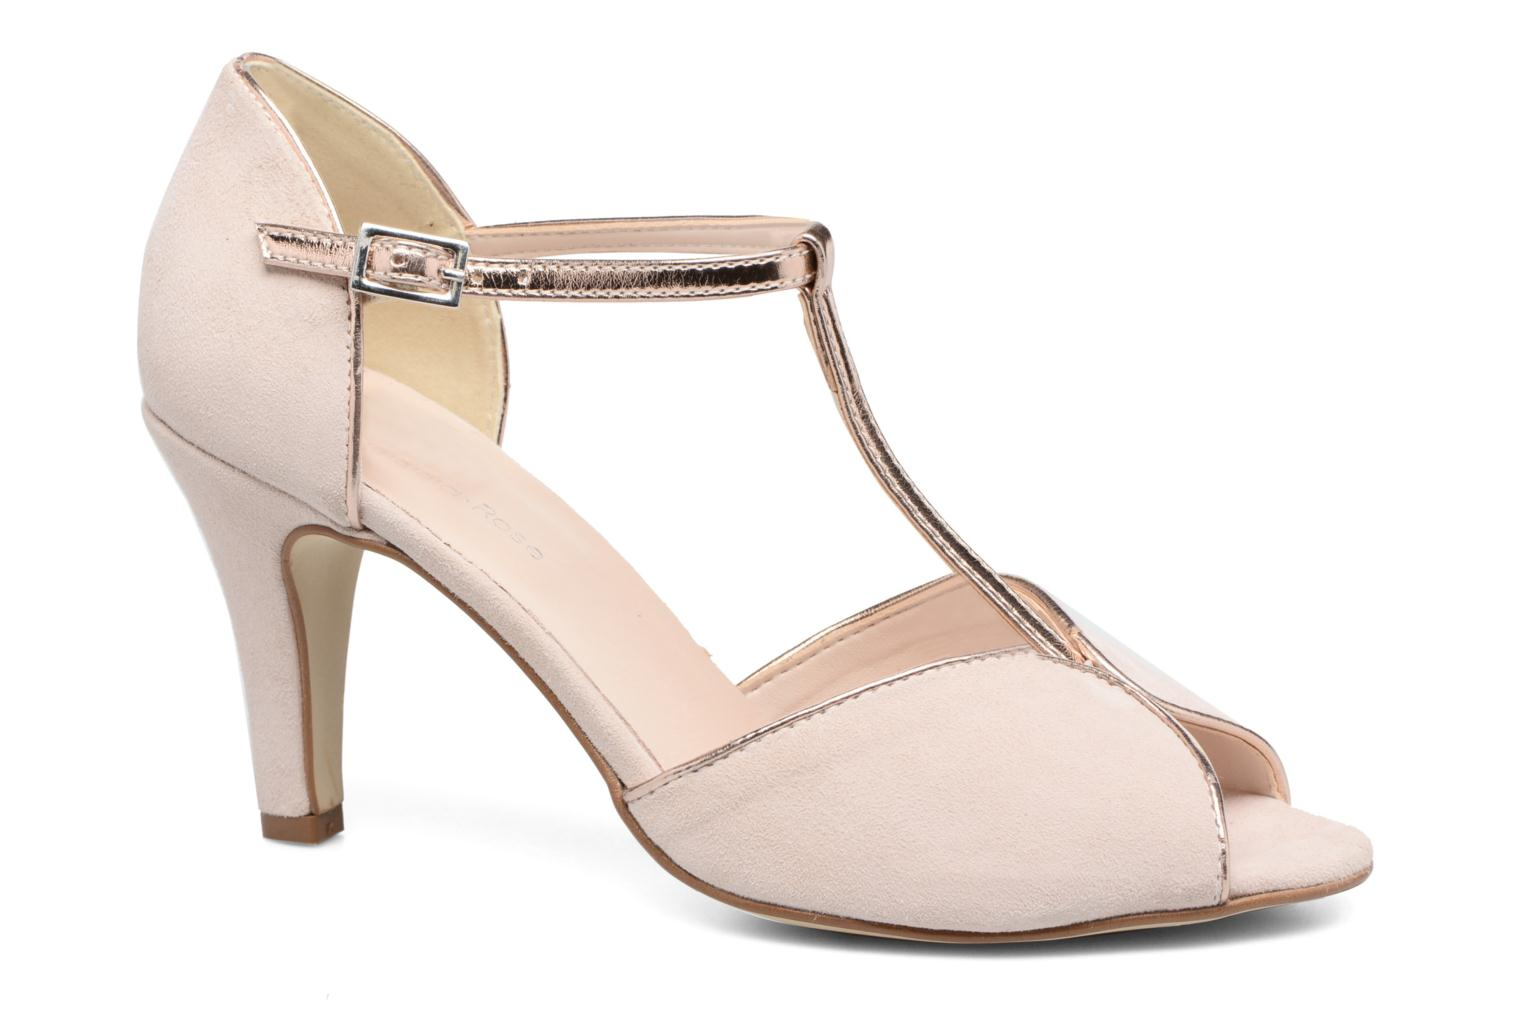 Georgia Rose - Damen - Gitango 3 - Pumps - rosa 7dfPqBAh